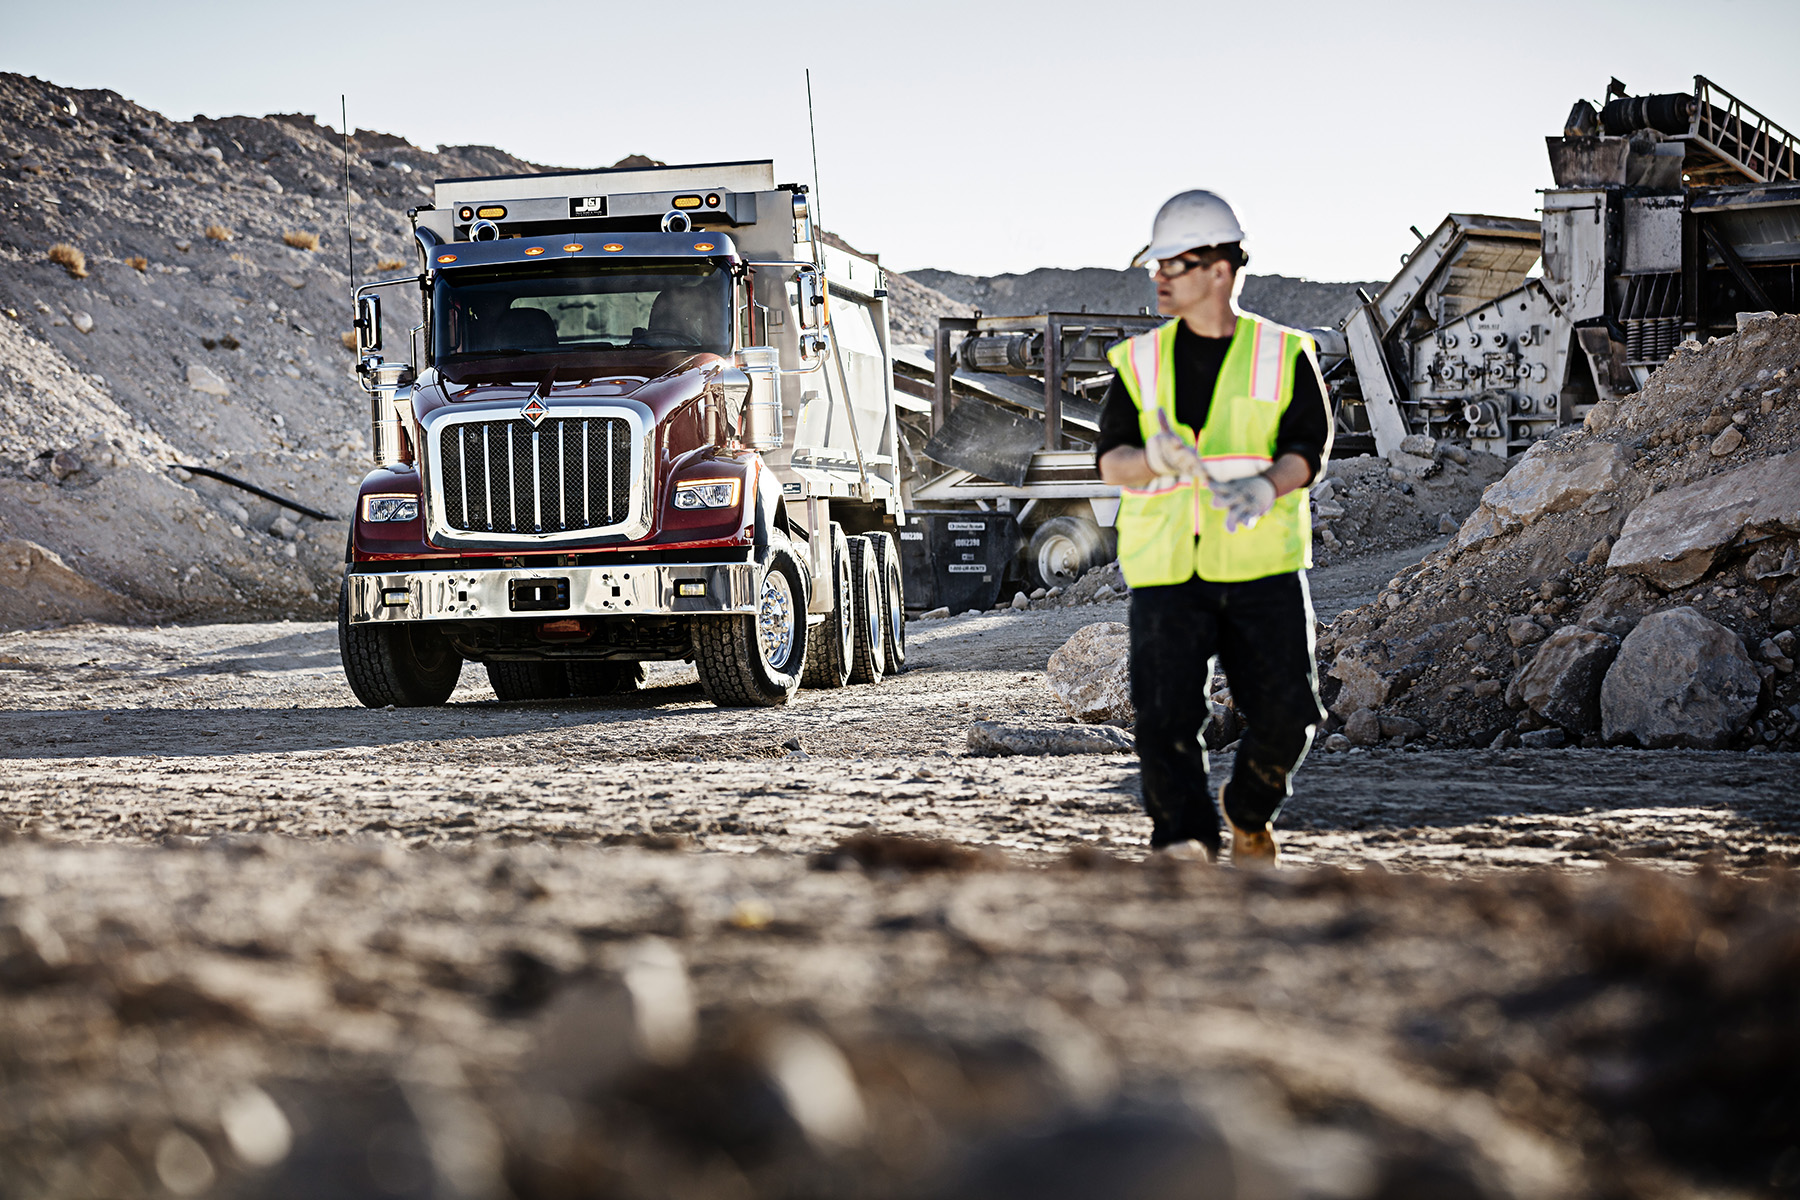 Worker on site, with a Navistar truck in the background.